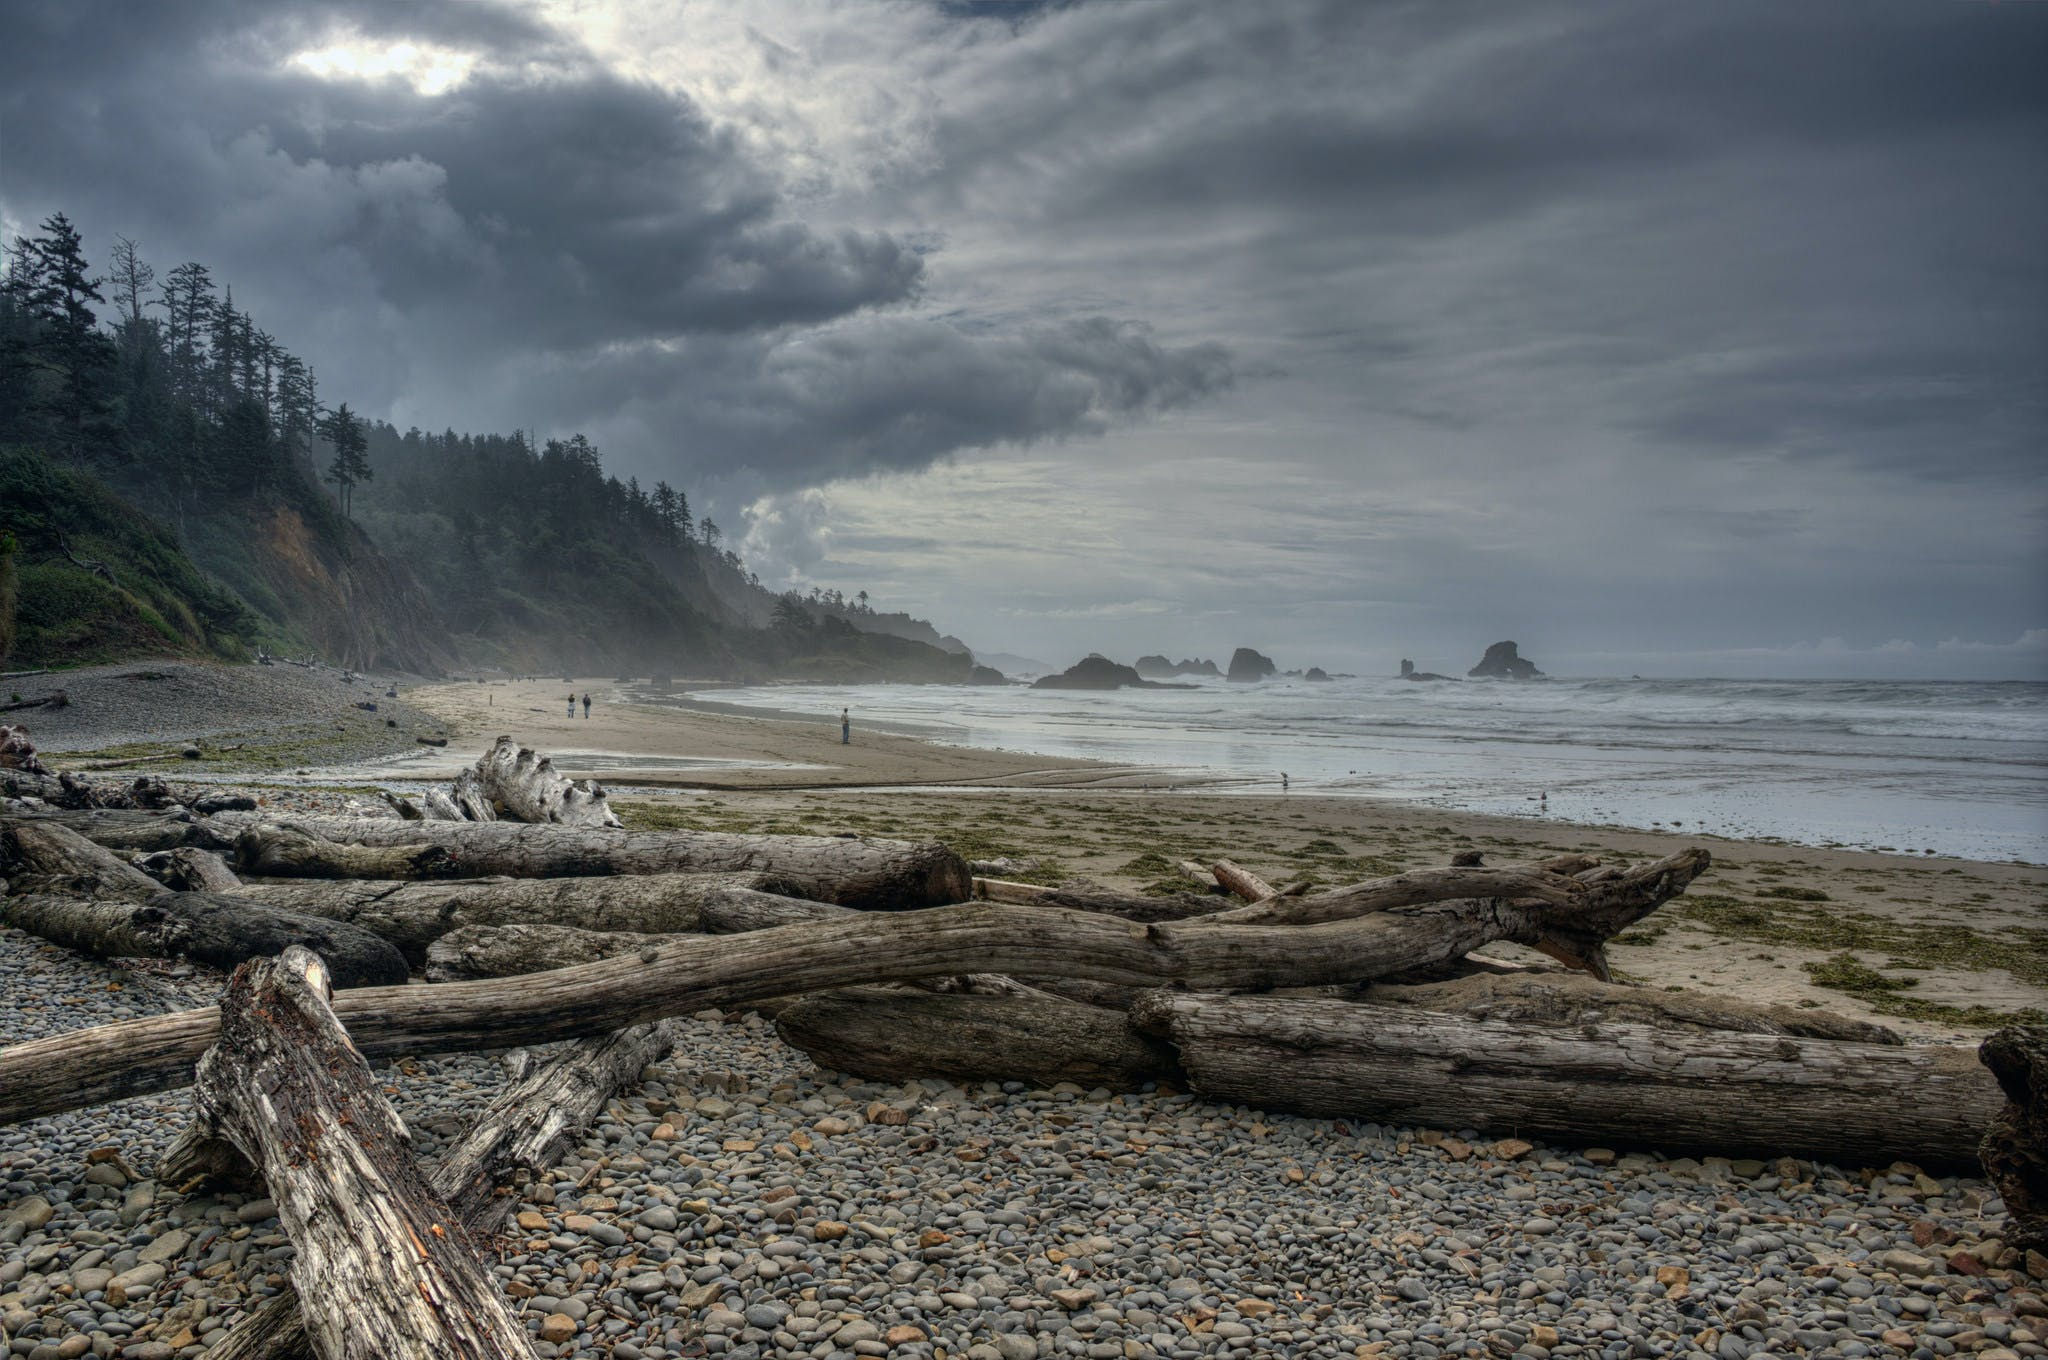 logs washed ashore on Indian Beach